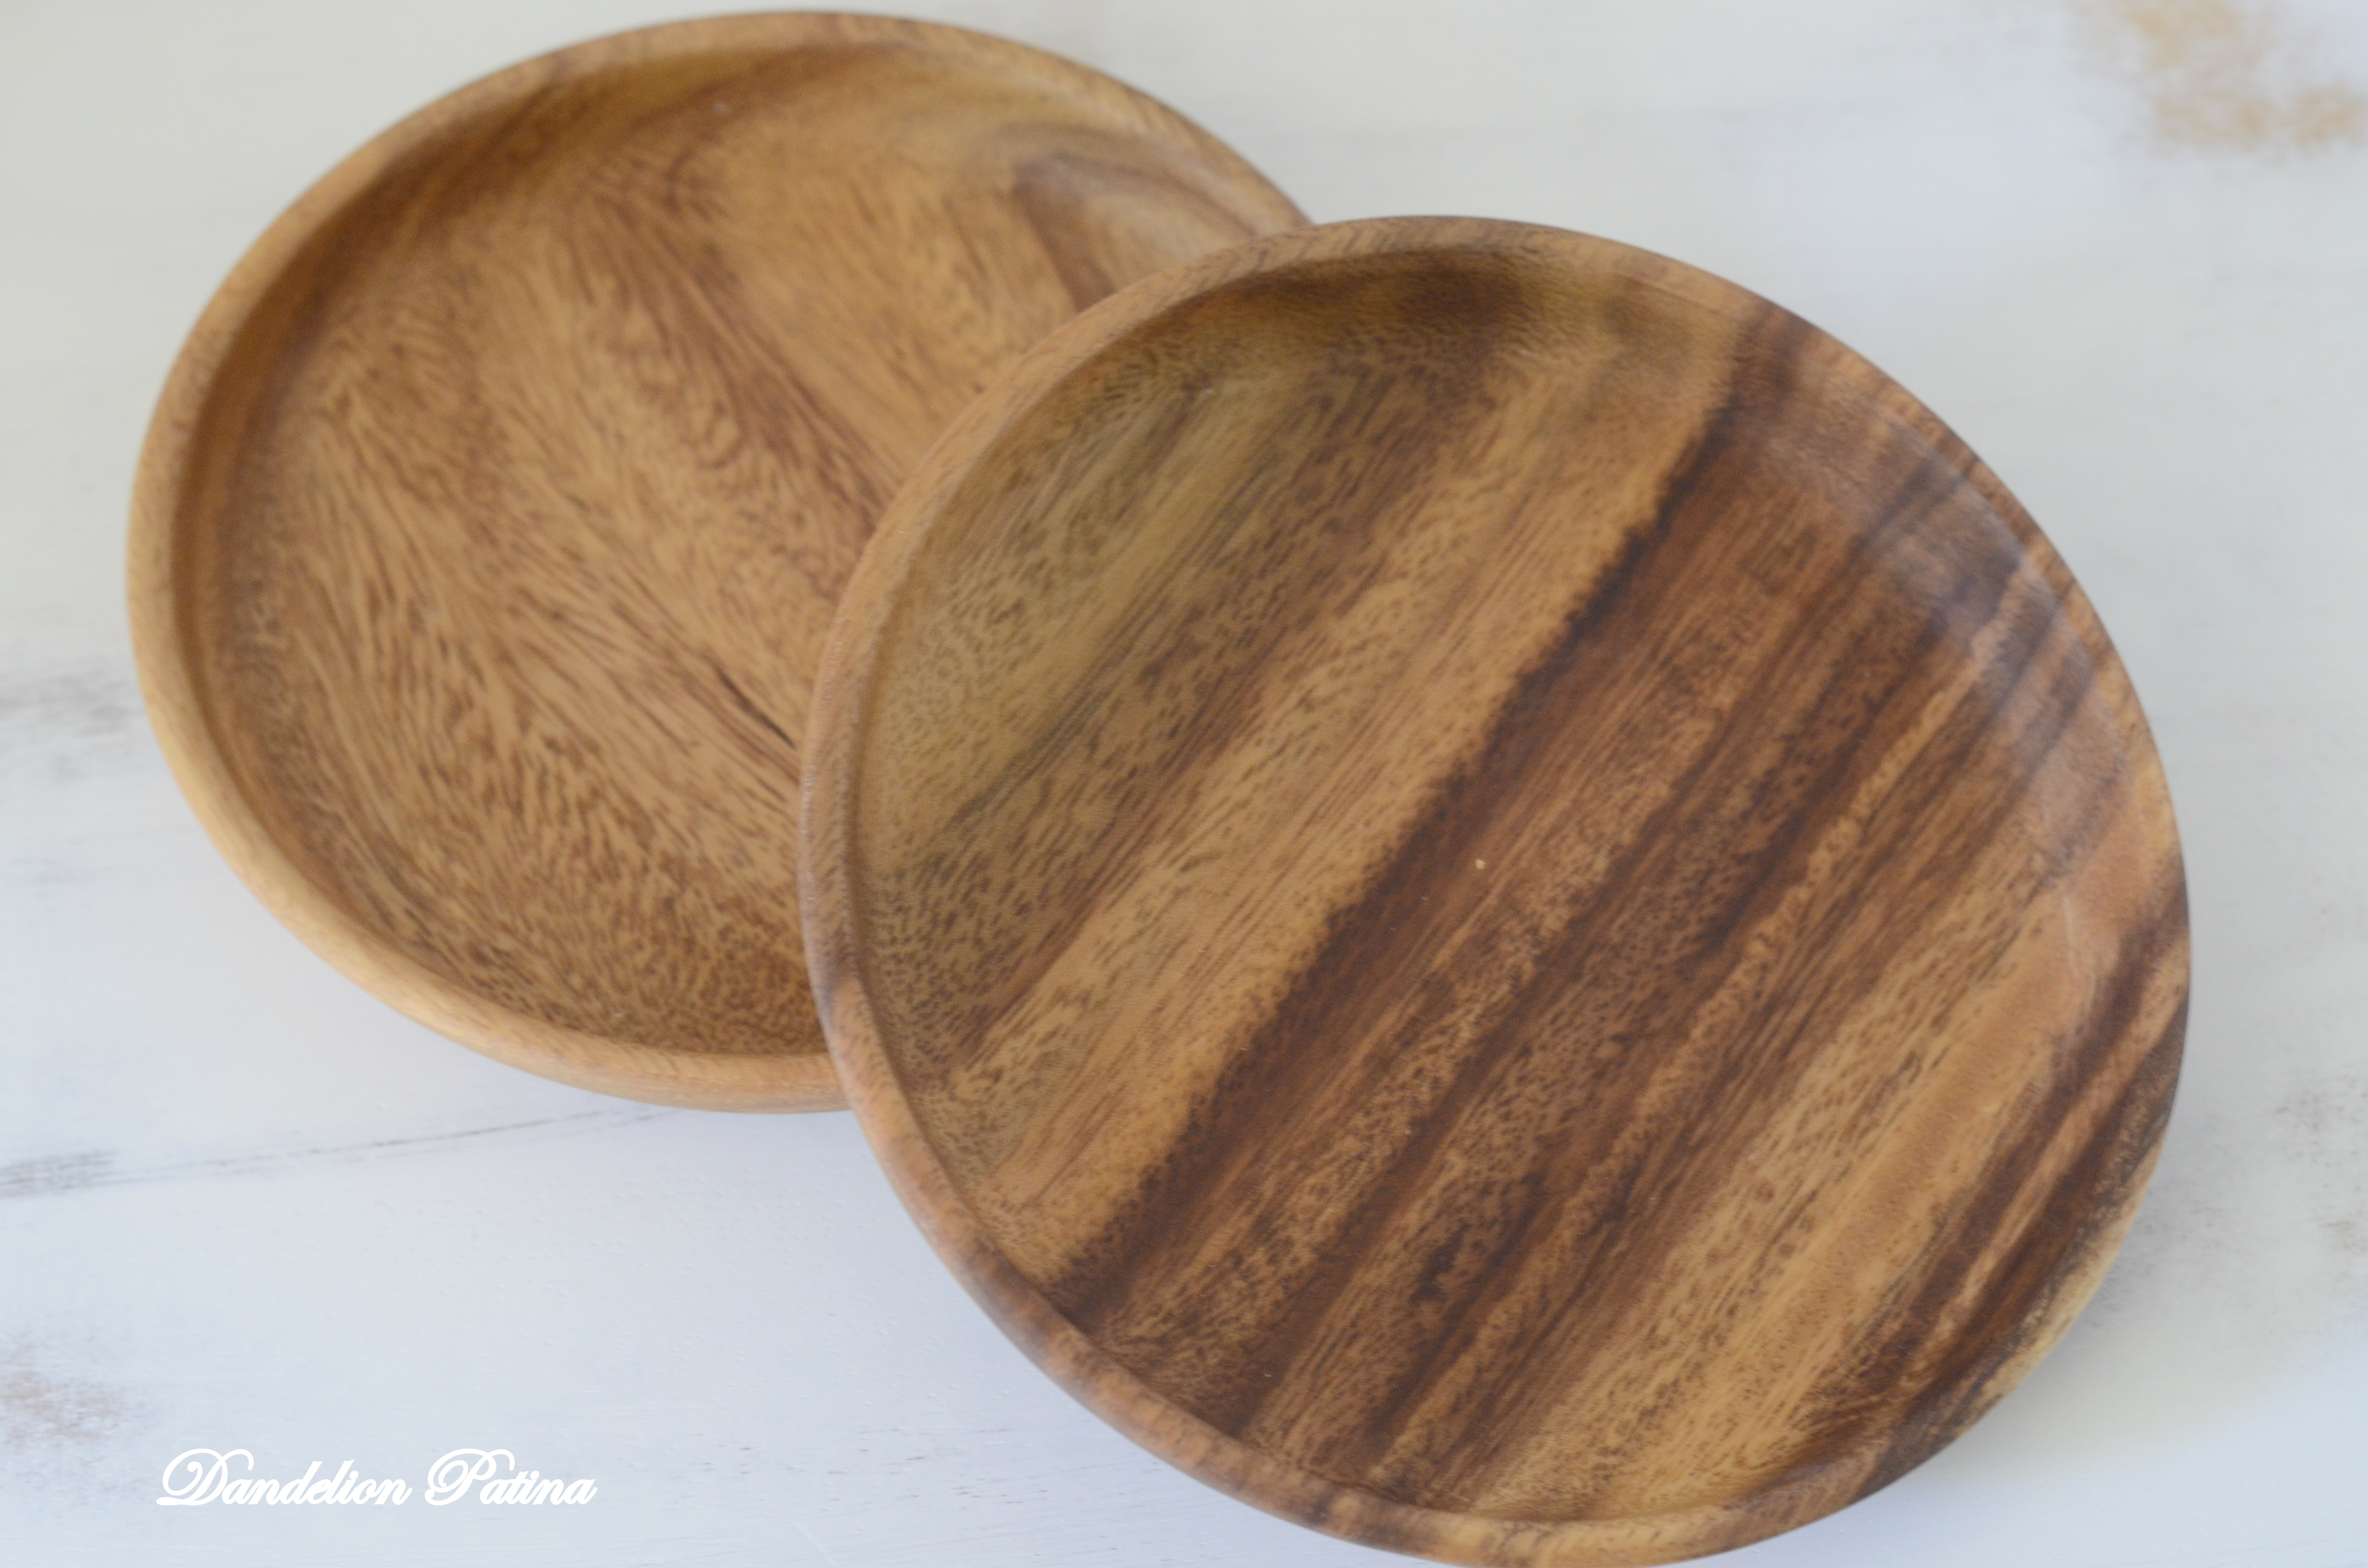 crate and barrel Tondo plates